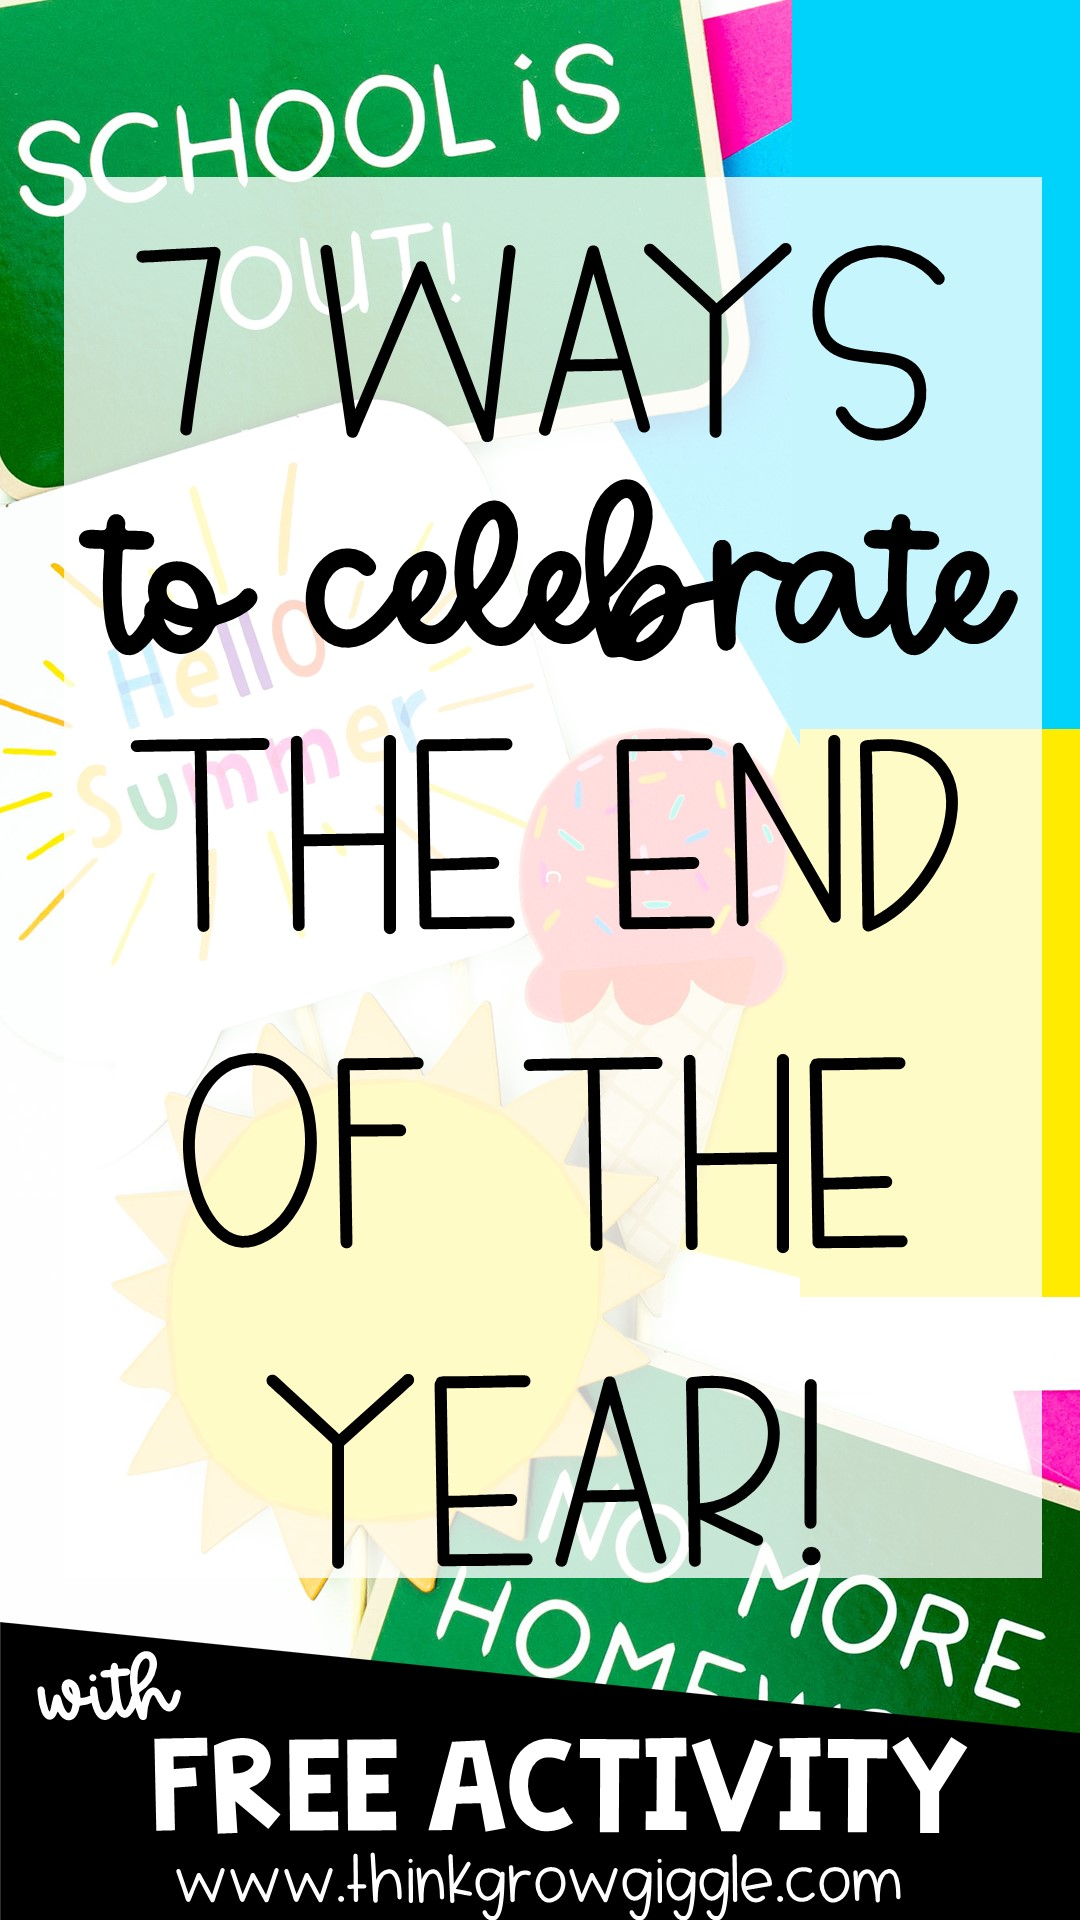 7 Ways to Celebrate the End of the Year